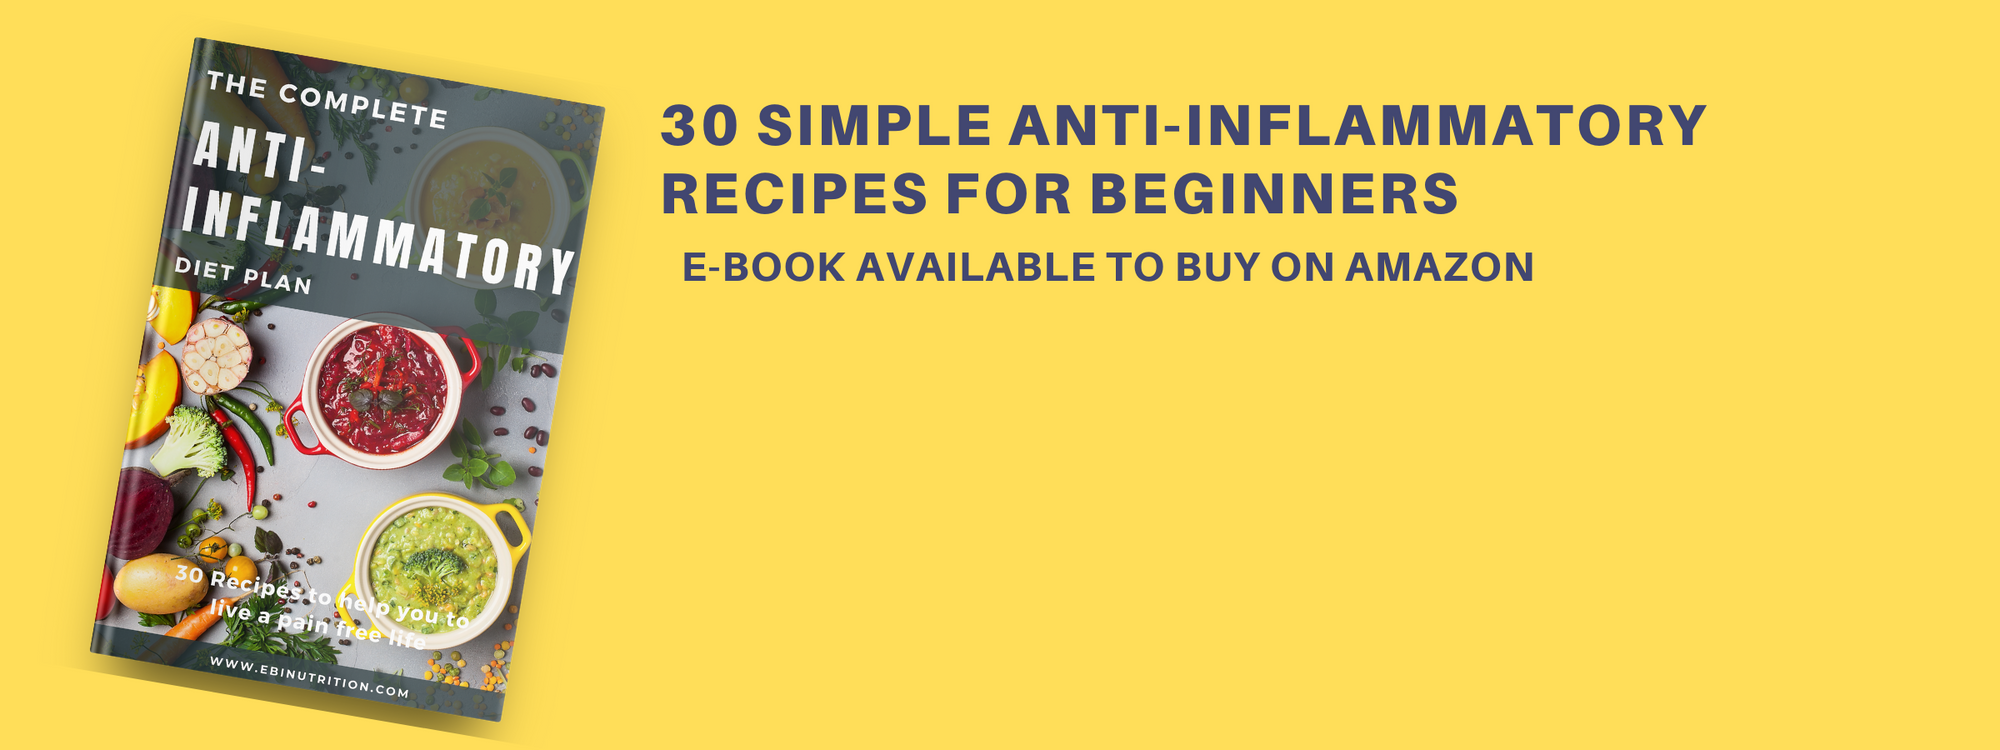 EBI Nutrition anti-inflammatory diet ebook